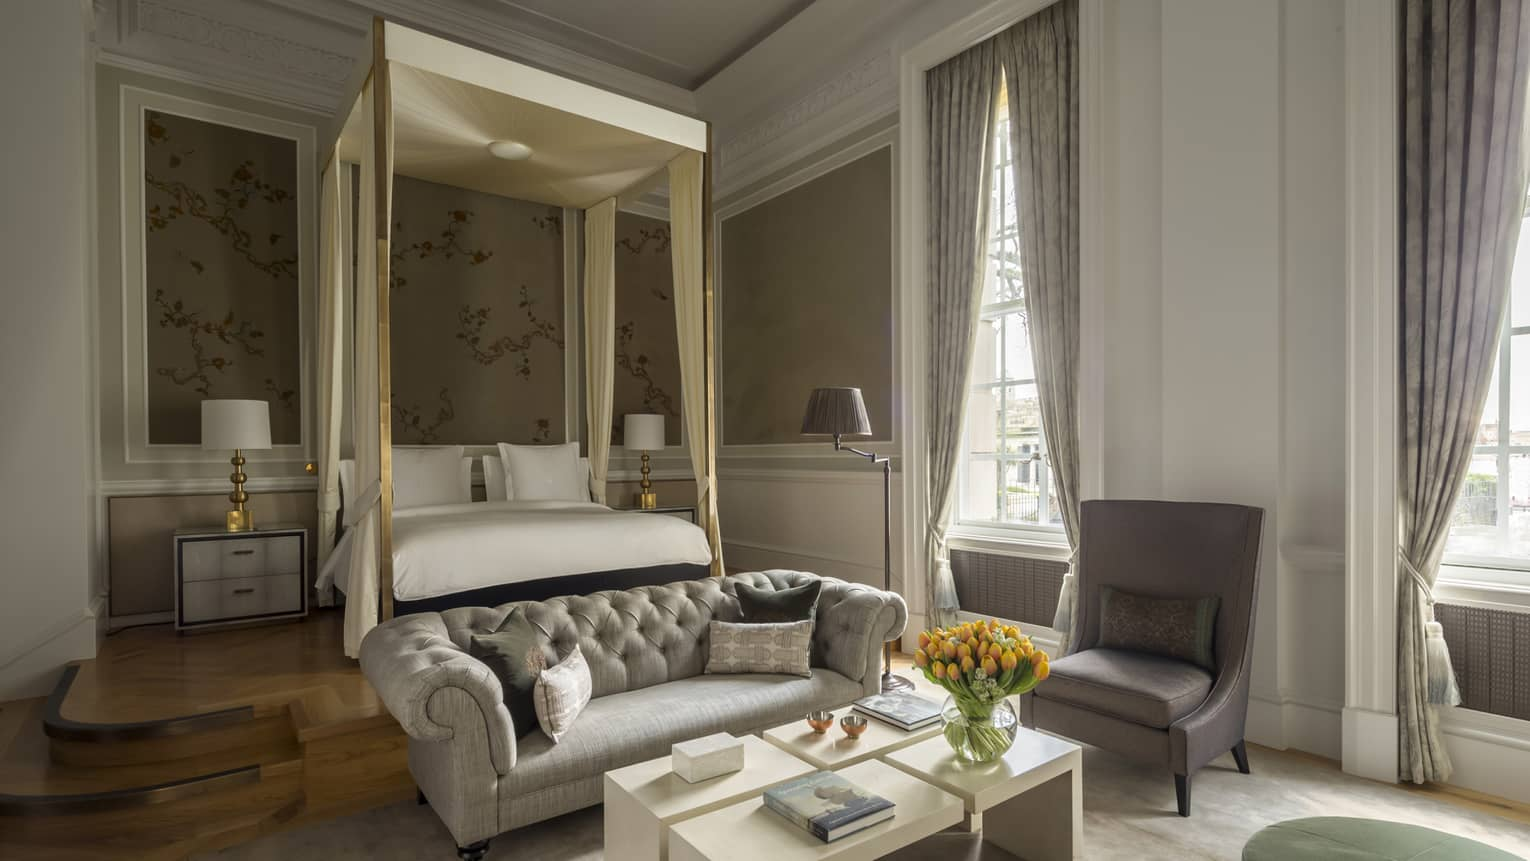 Heritage Suite with tall windows, canopy bed, tufted loveseat sofa, armchair and table at foot